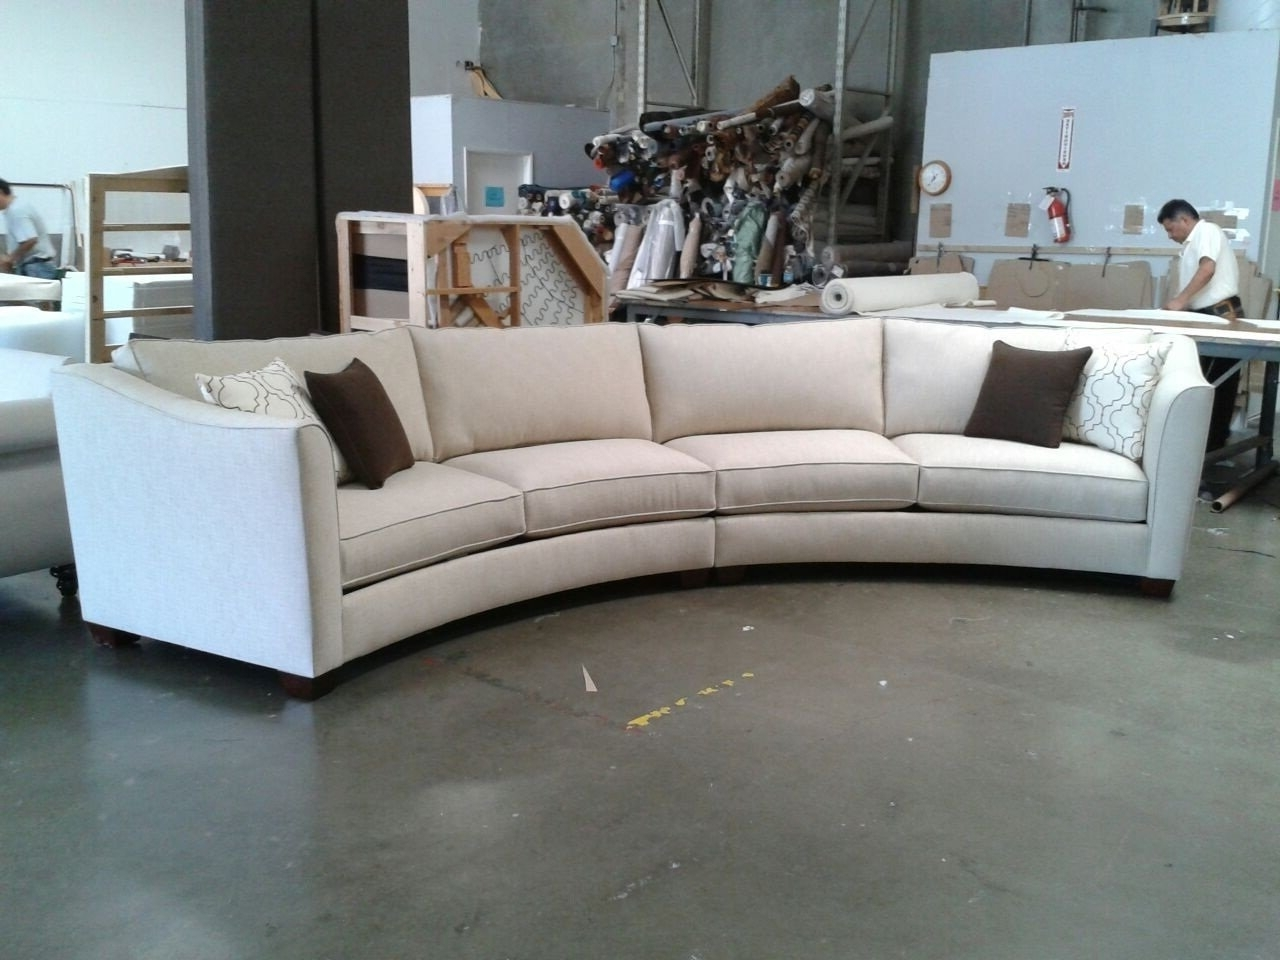 Semicircular Sofas With Best And Newest Curved Sectional Sofa Design — Cabinets, Beds, Sofas And (View 15 of 15)